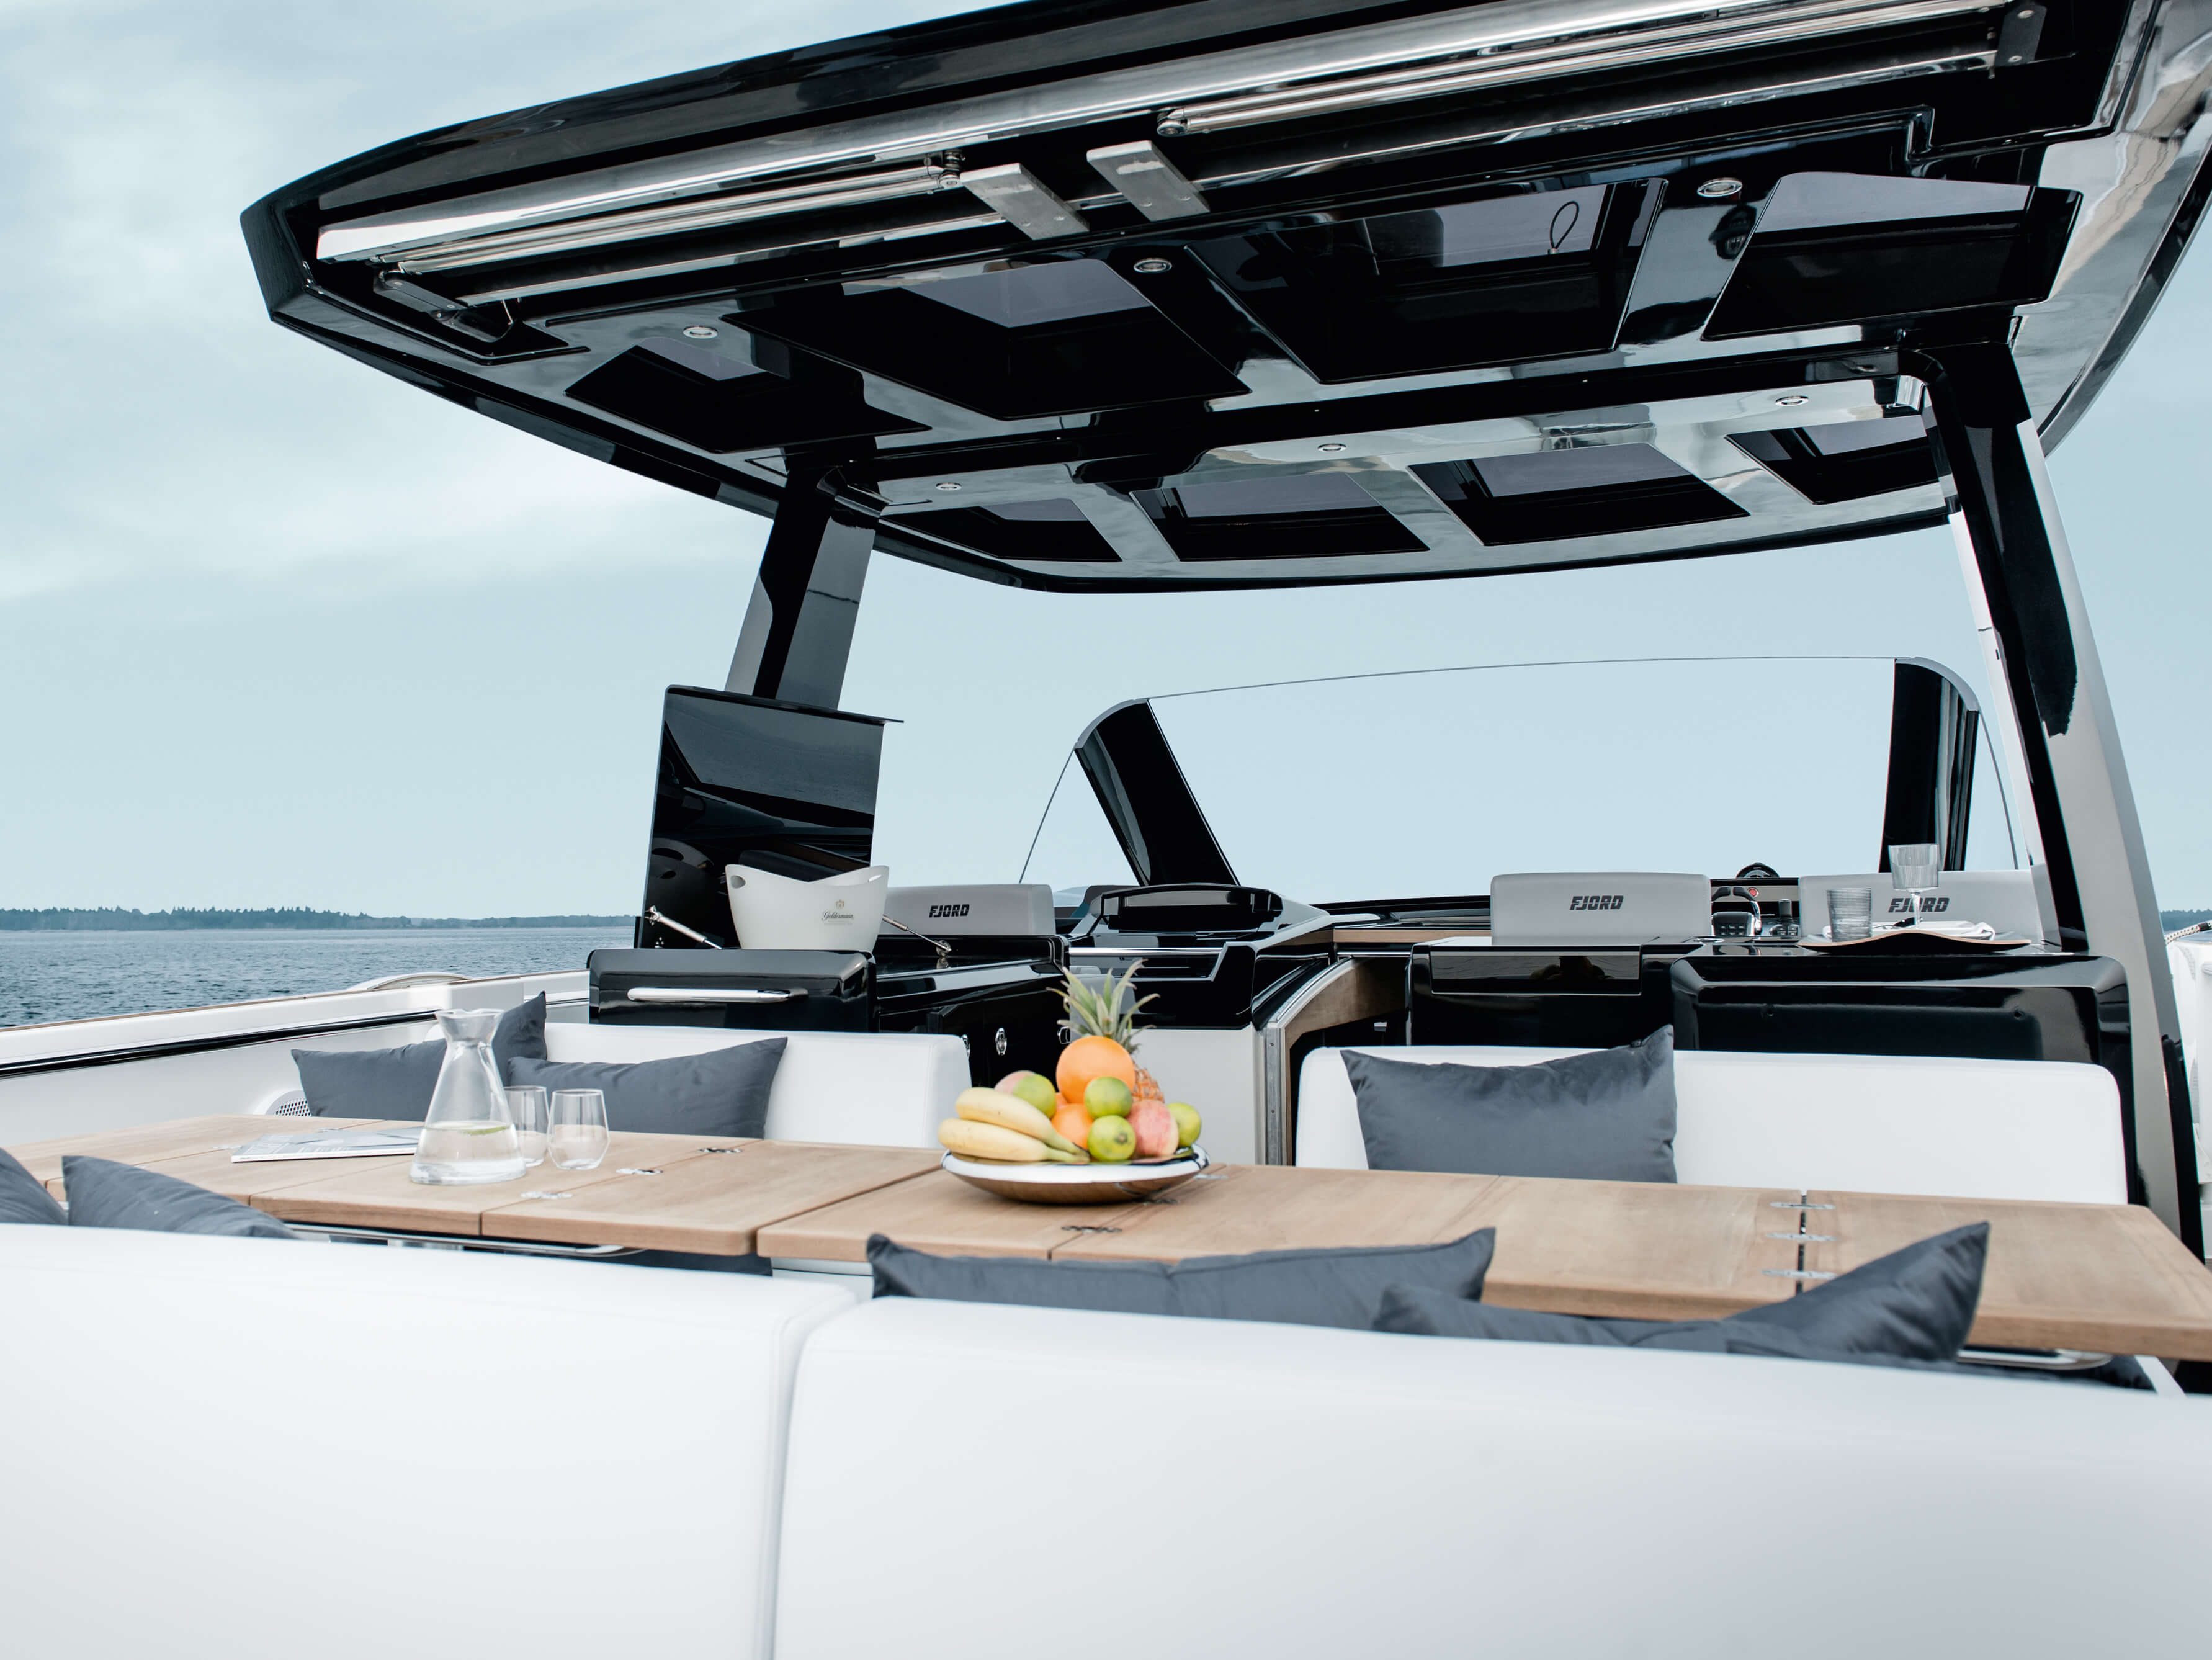 Fjord 48 open Exterior at anchor | T-top with skylights, seating area with folding table convertible to sunbed | Fjord